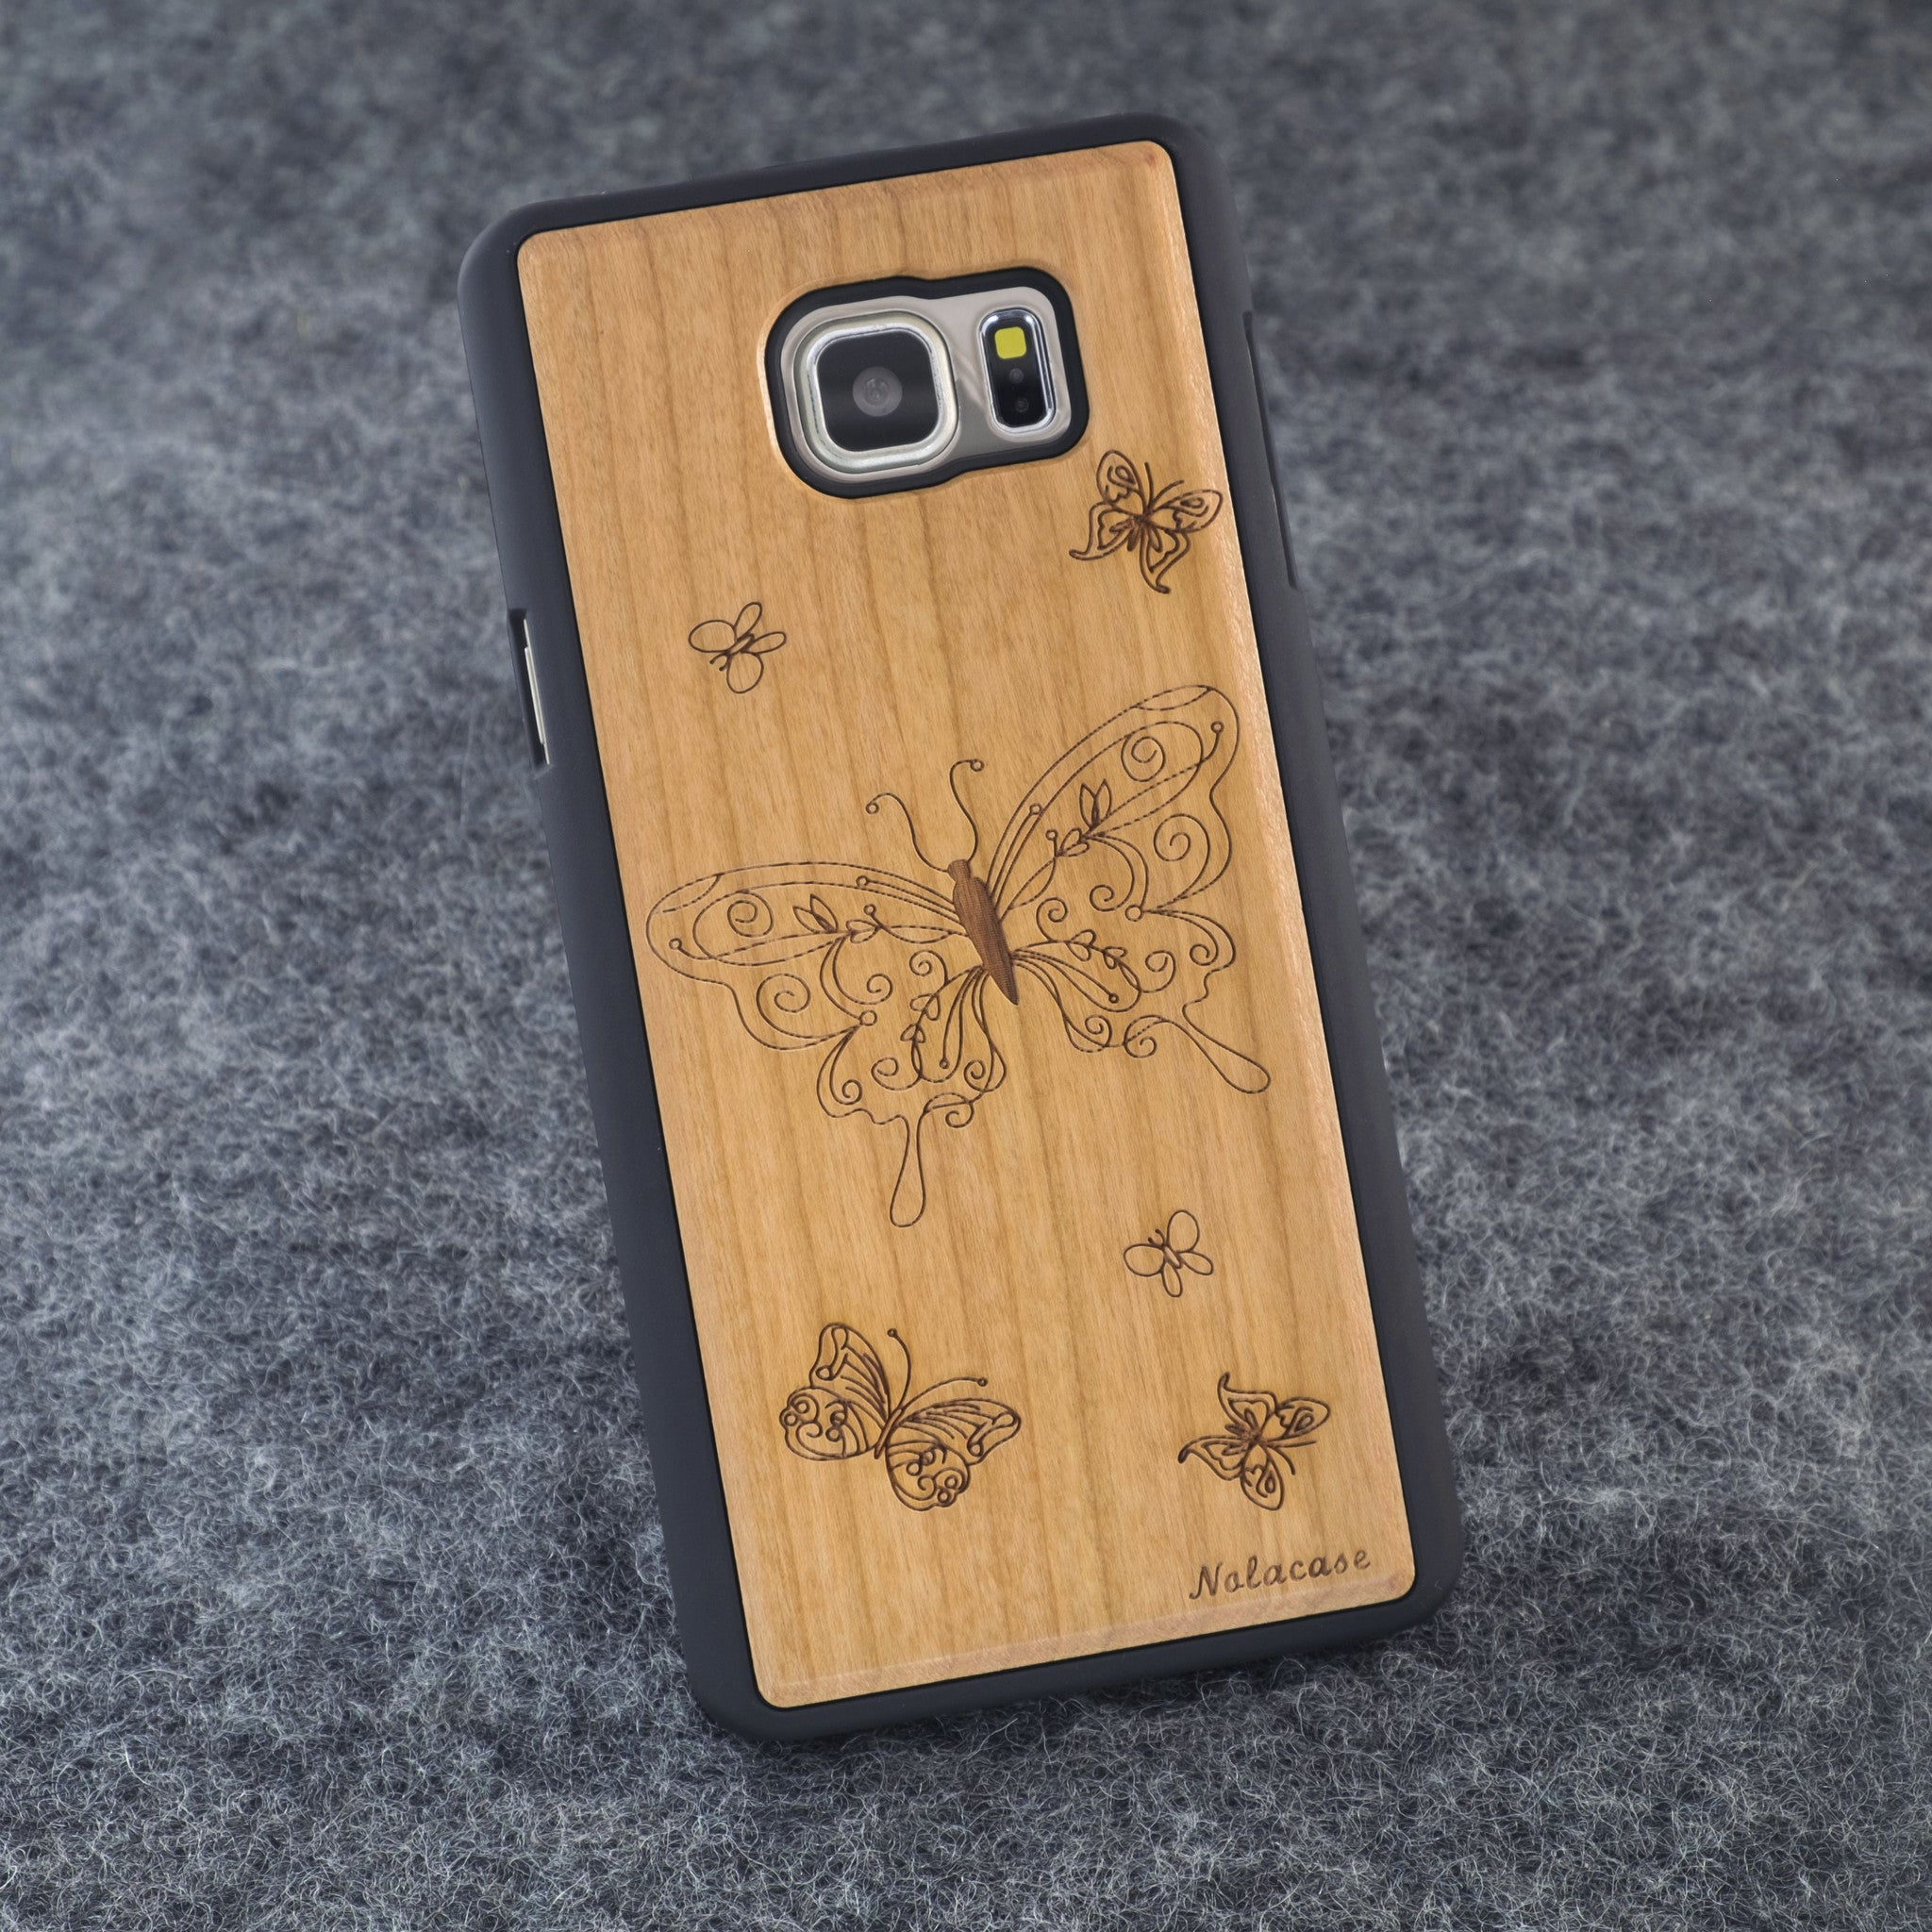 Samsung Note 5 Butterflies Slim Wood Case - NOLACASE